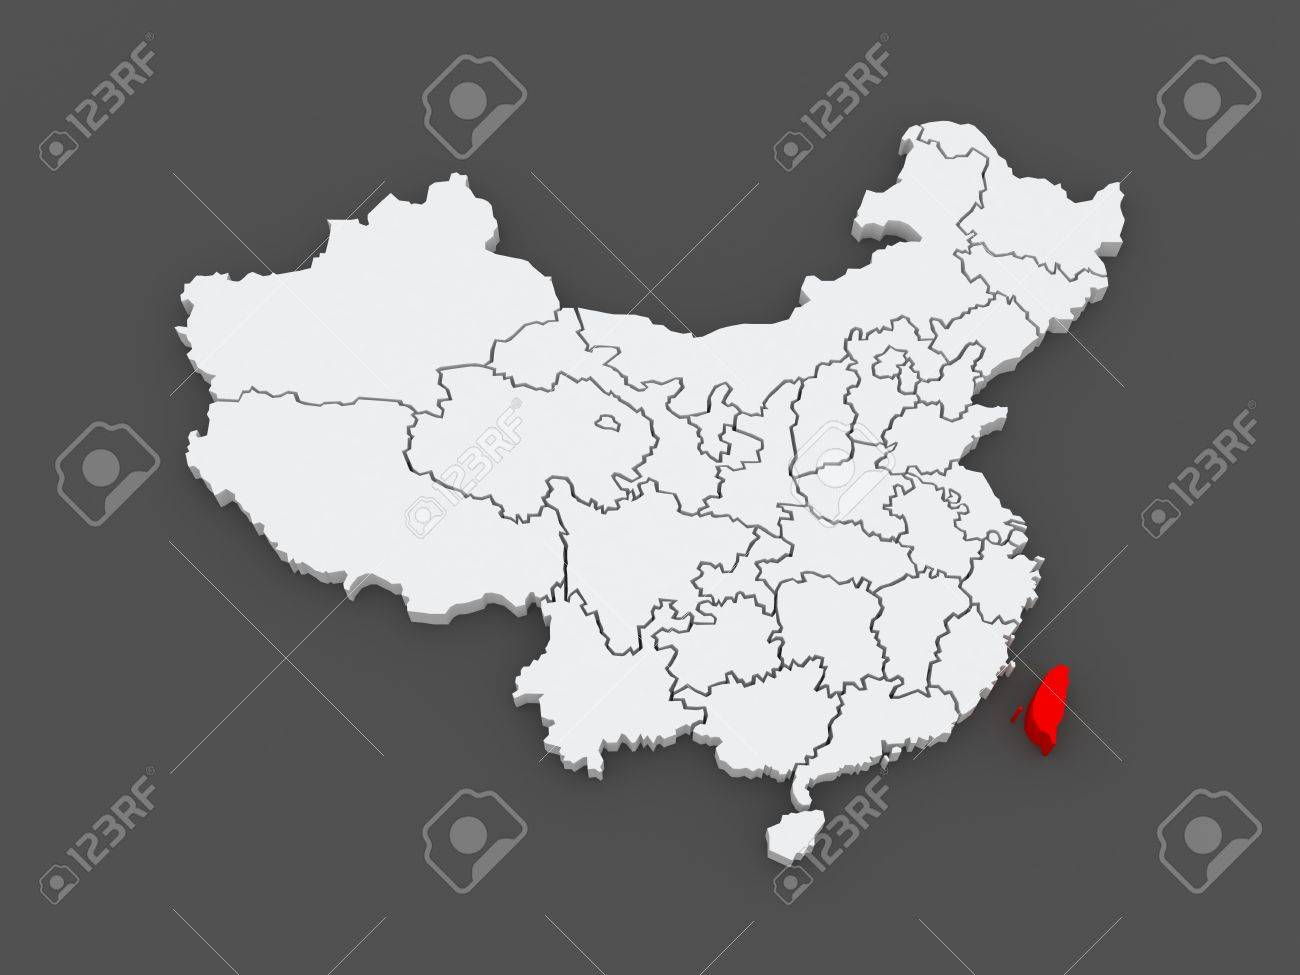 Taiwan China Map.Map Of Taiwan China 3d Stock Photo Picture And Royalty Free Image